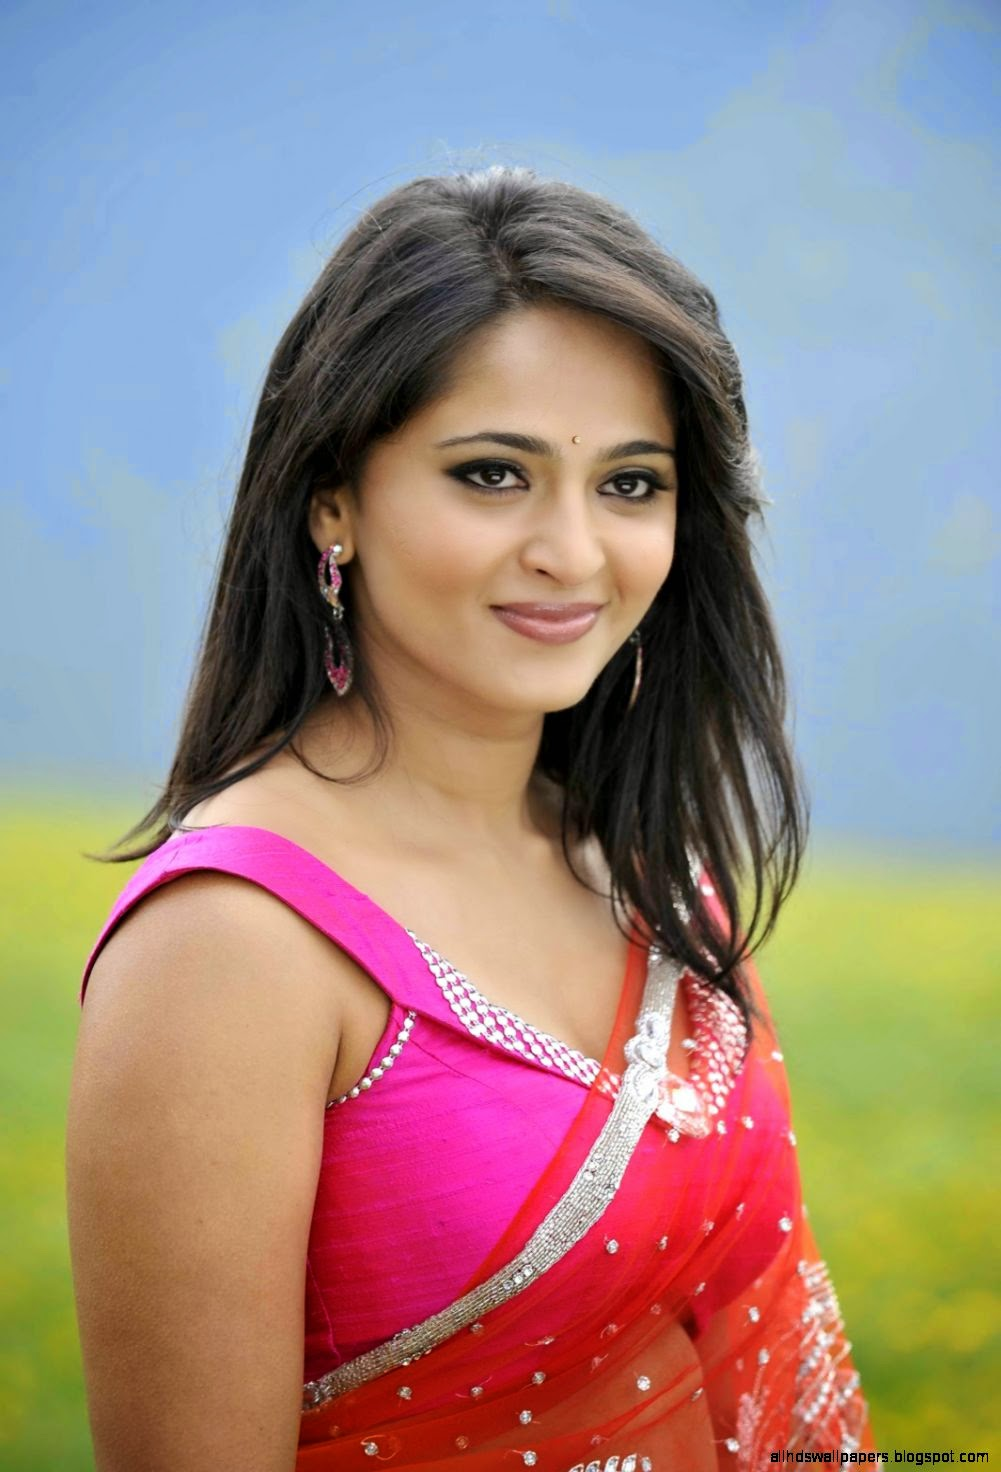 Most Beautiful Indian Girl Wallpapers Hd  All Hd Wallpapers-9796